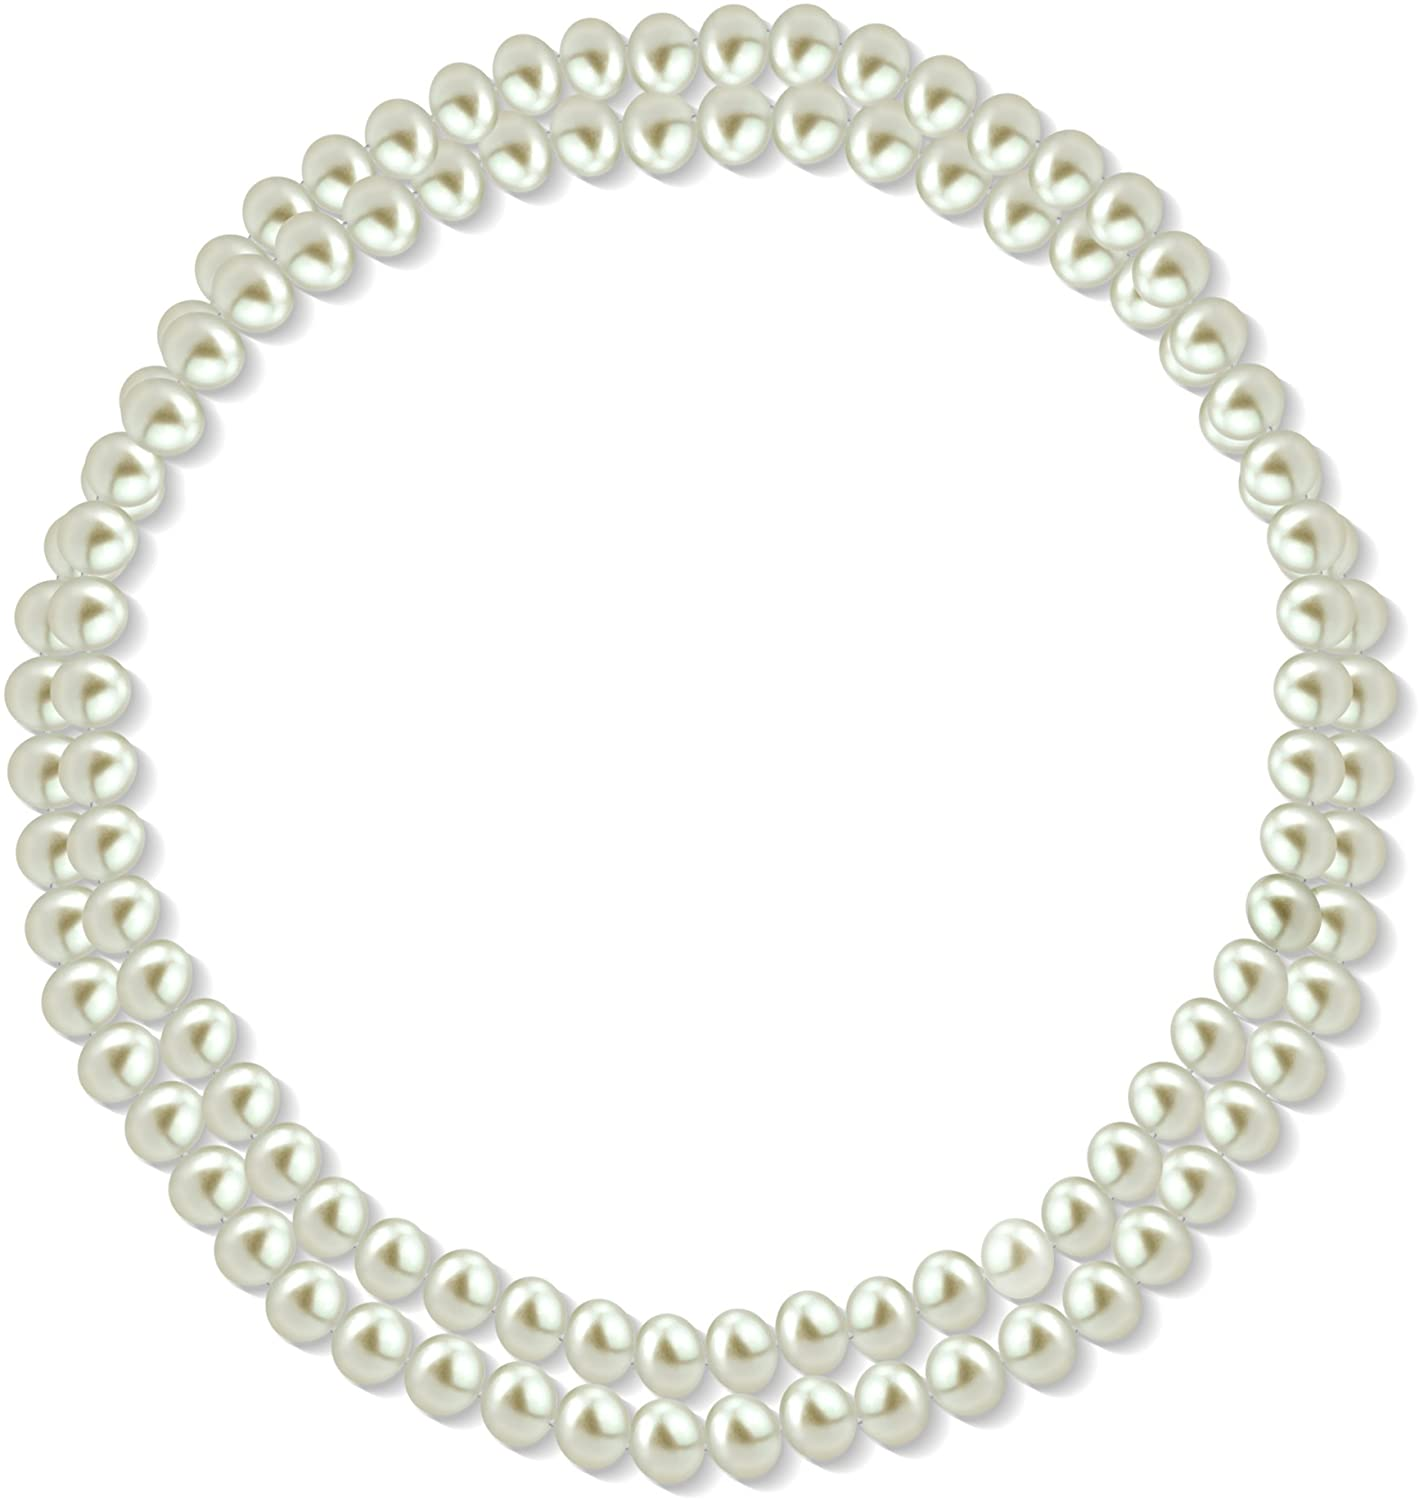 La Regis Jewelry 11-11.5mm White Freshwater Cultured High Luster Pearl Endless Necklace, 36